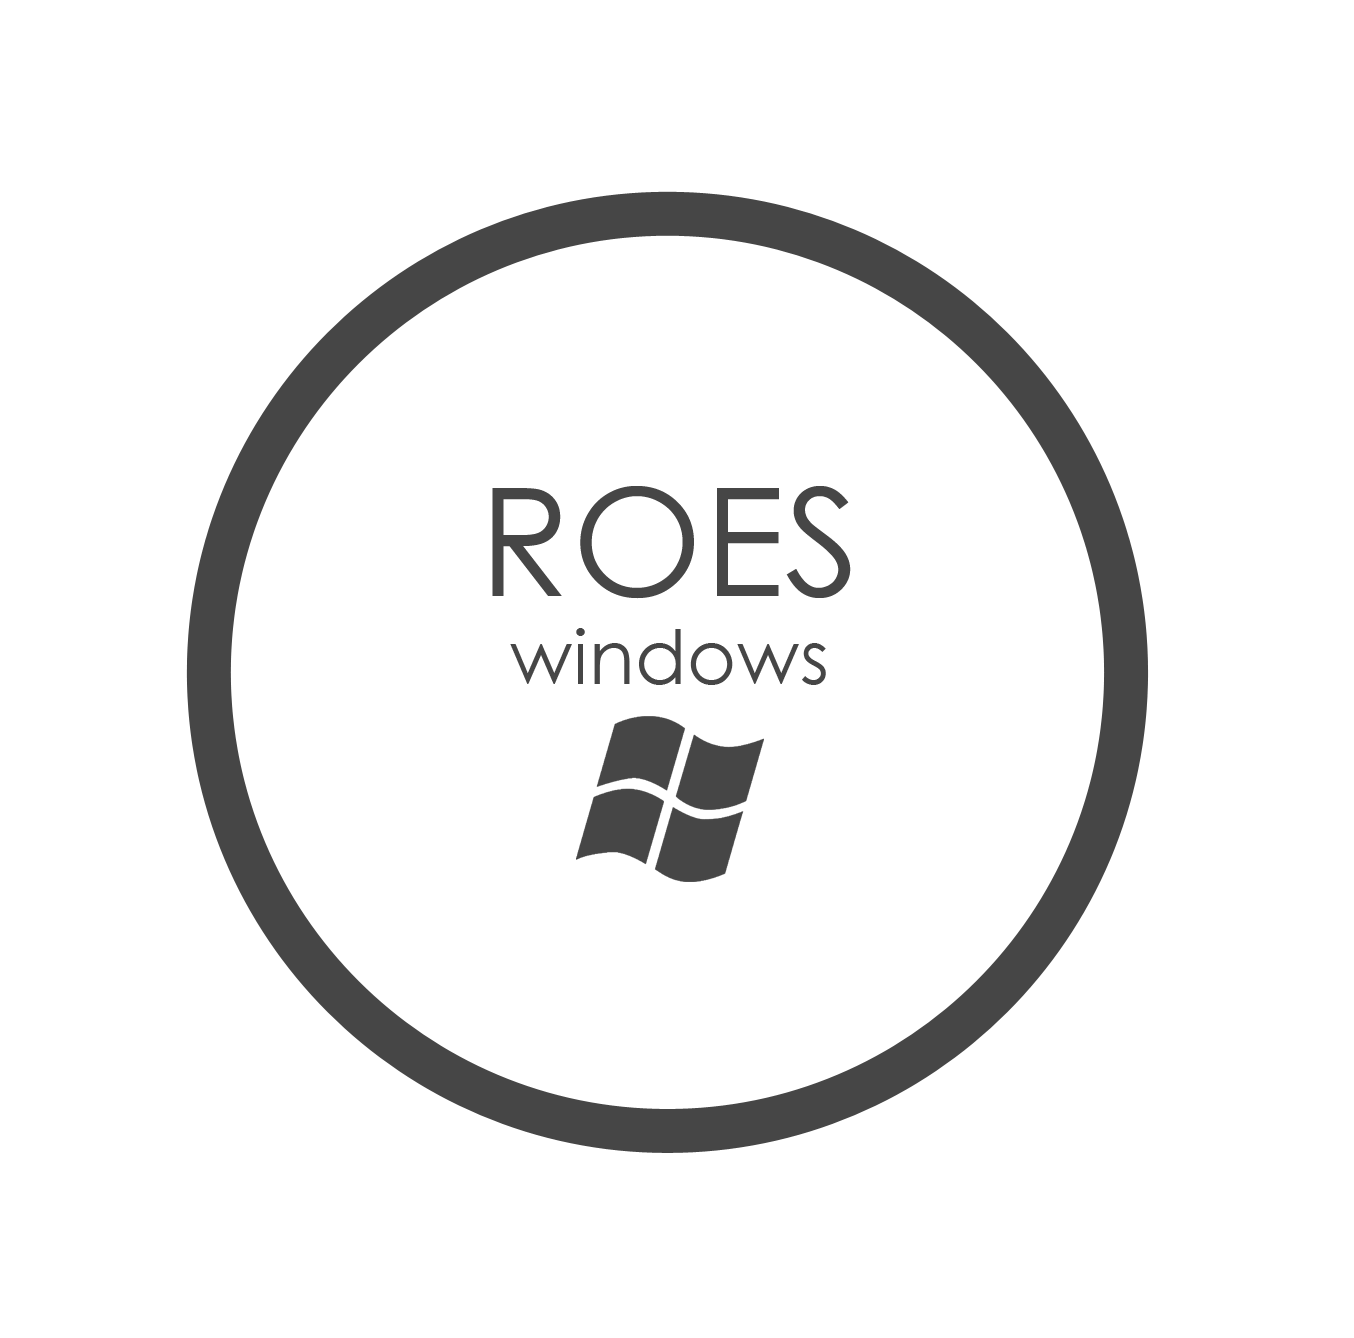 roes-windows.png